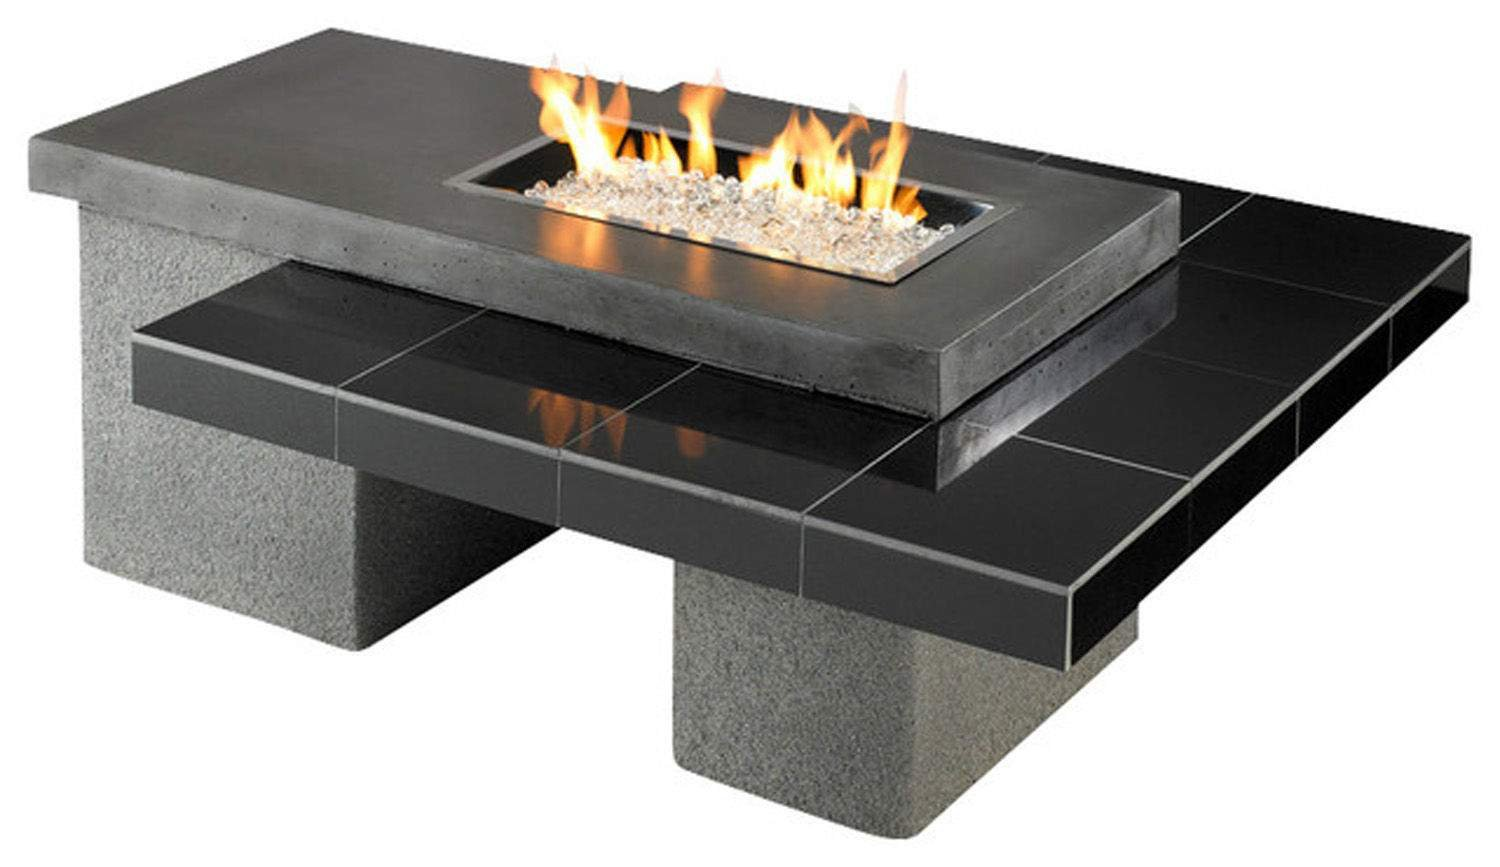 18 Outdoor Gas Fire Pit Tables With Heat Output Of At